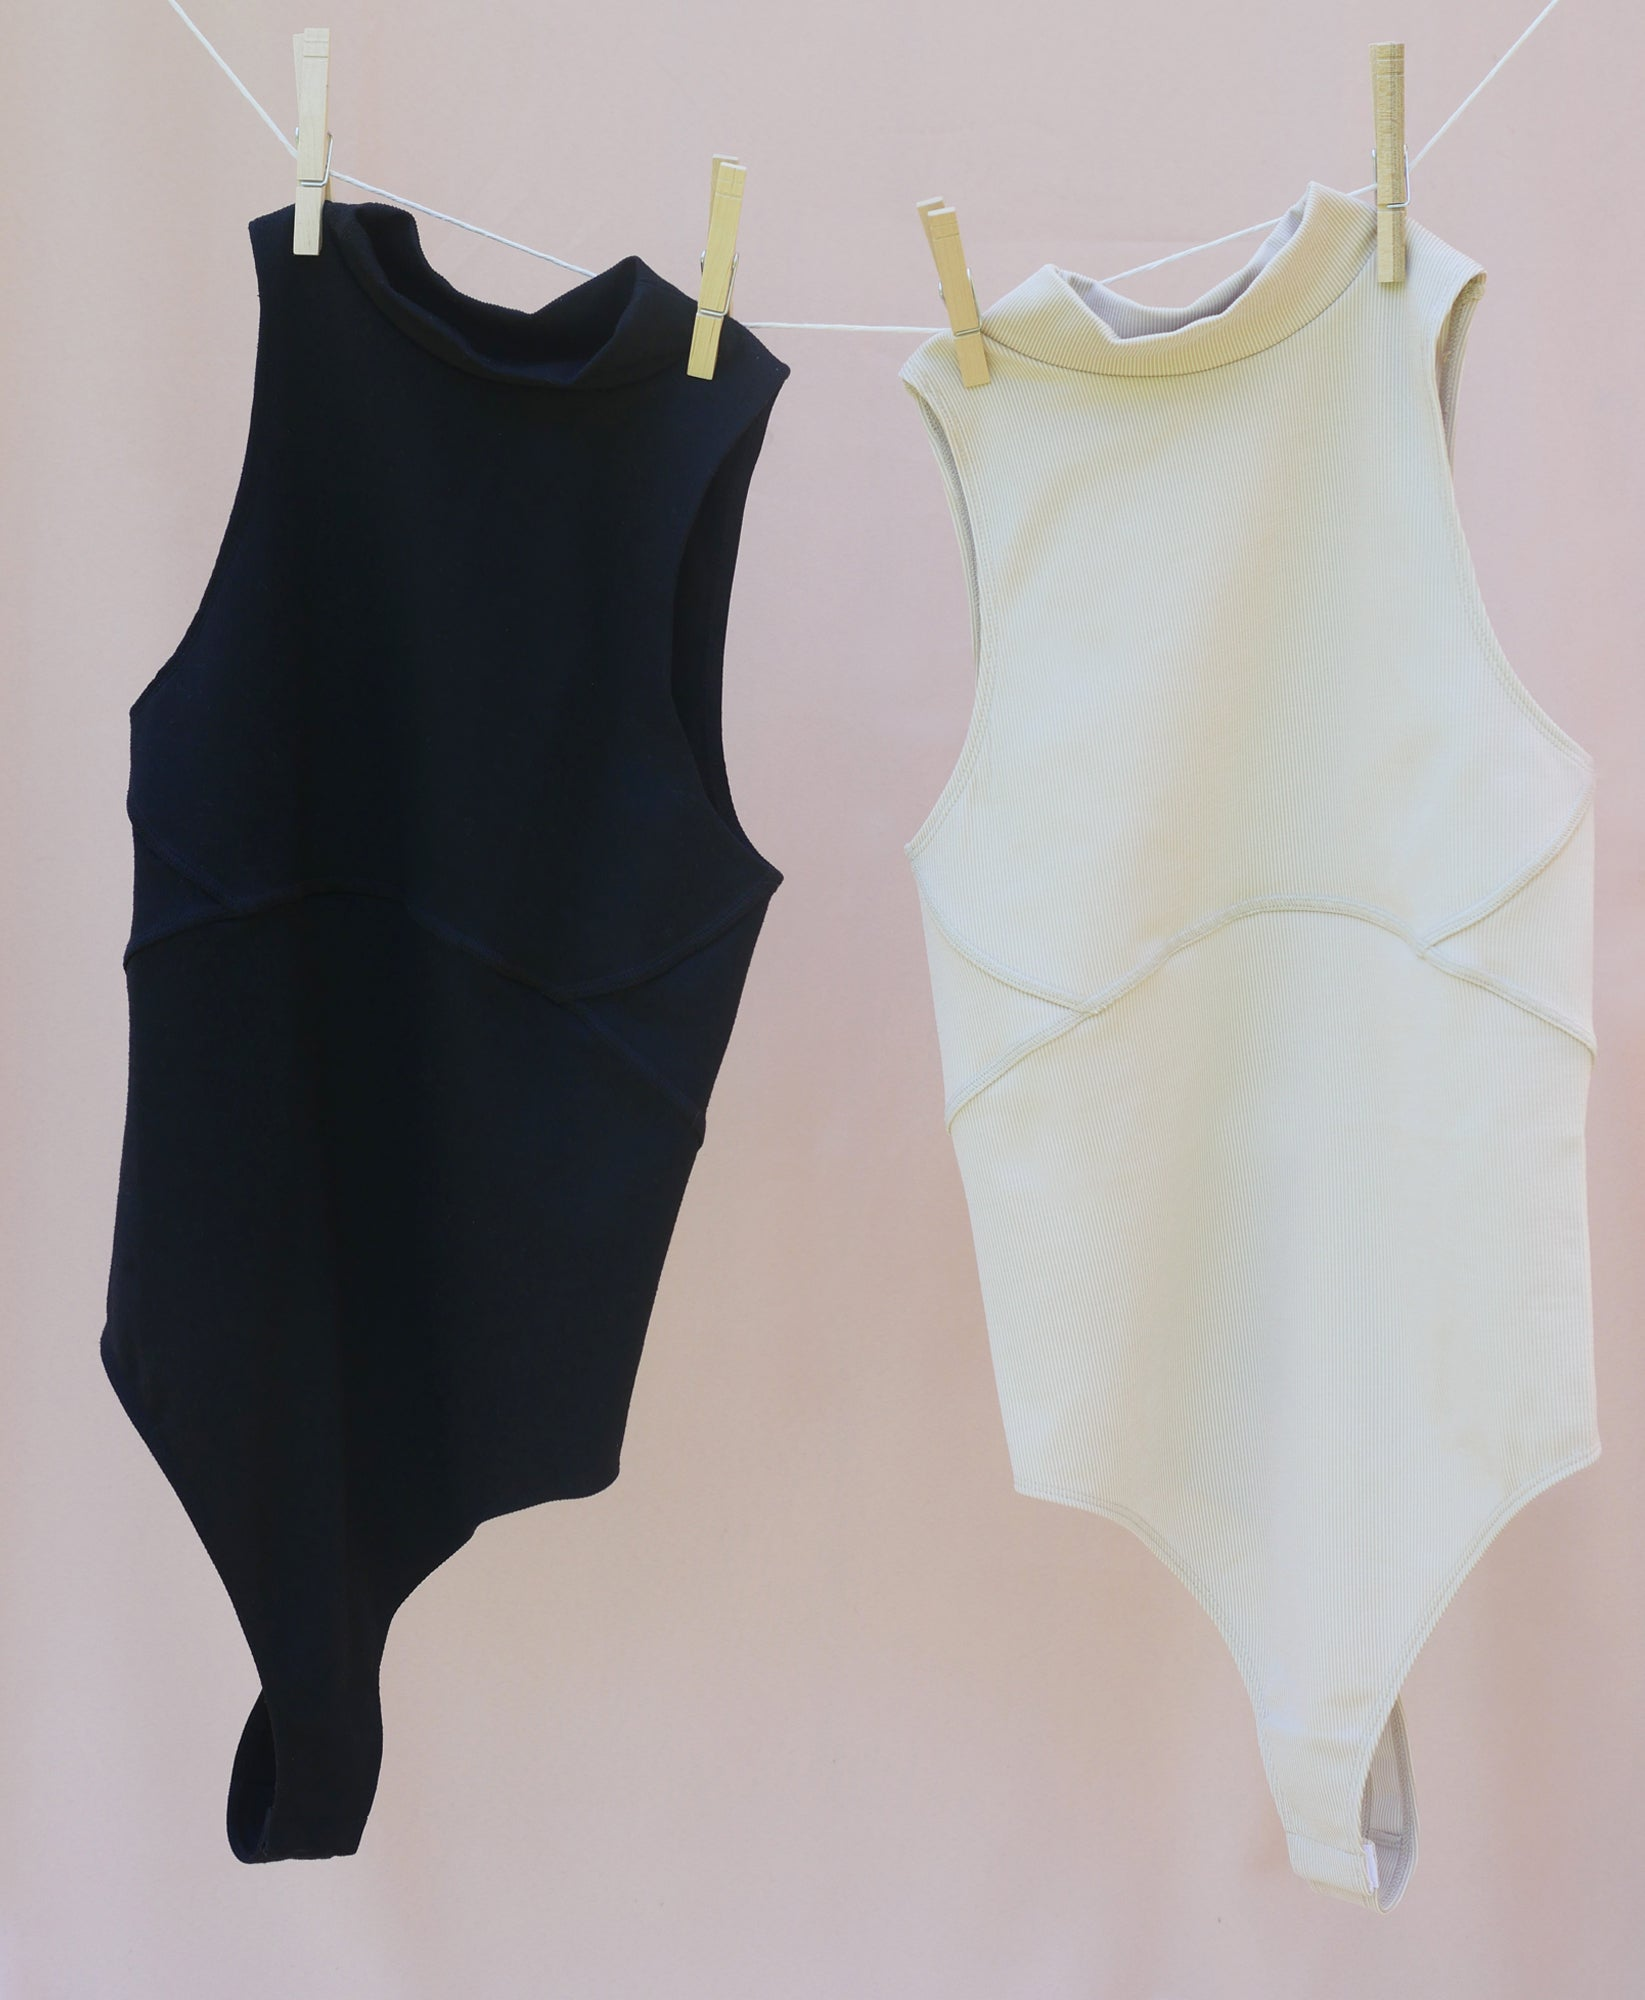 Wear One's At Aerobic Rib Bodysuit in Jet and Oatmeal Flat Front